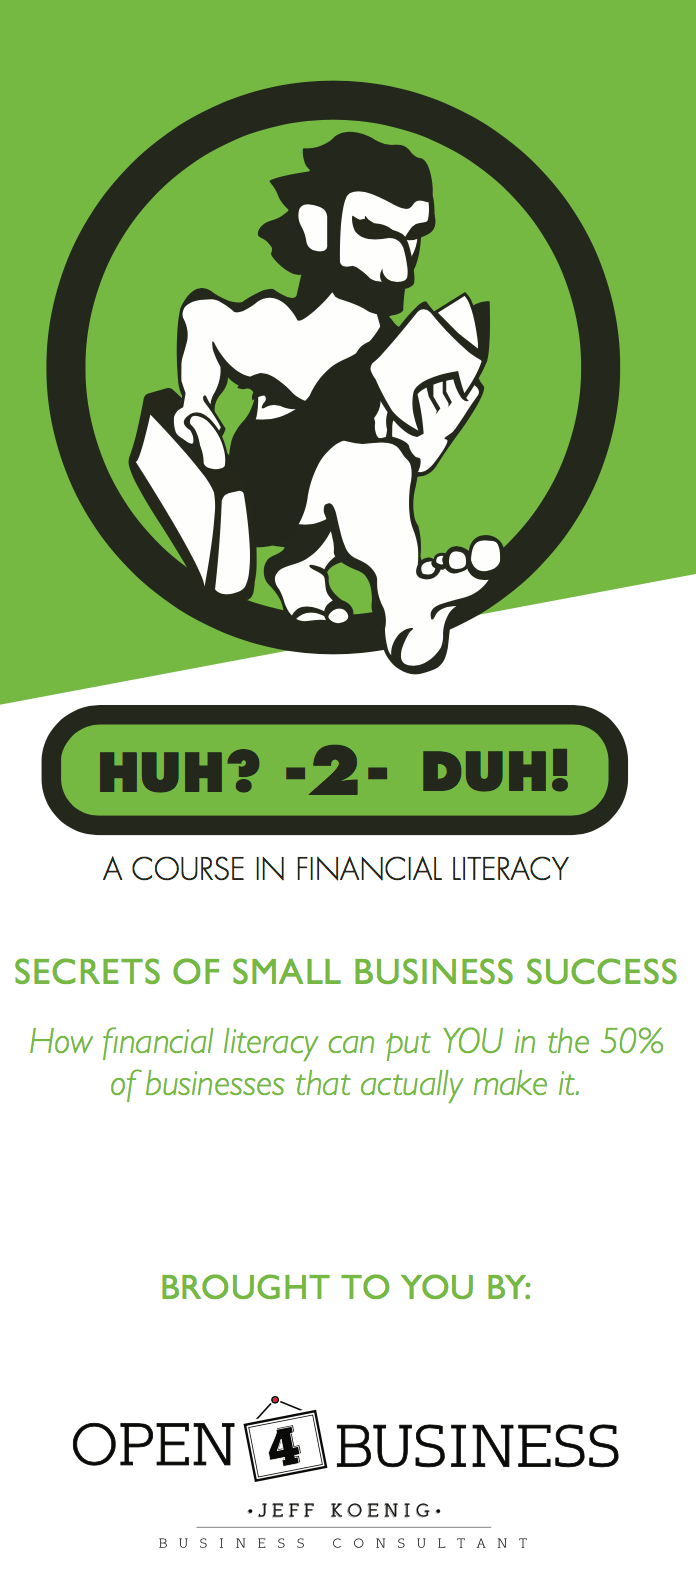 H2D Business Financial Literacy Manhattan Kansas Education The Fellow Coworking Open 4 Business